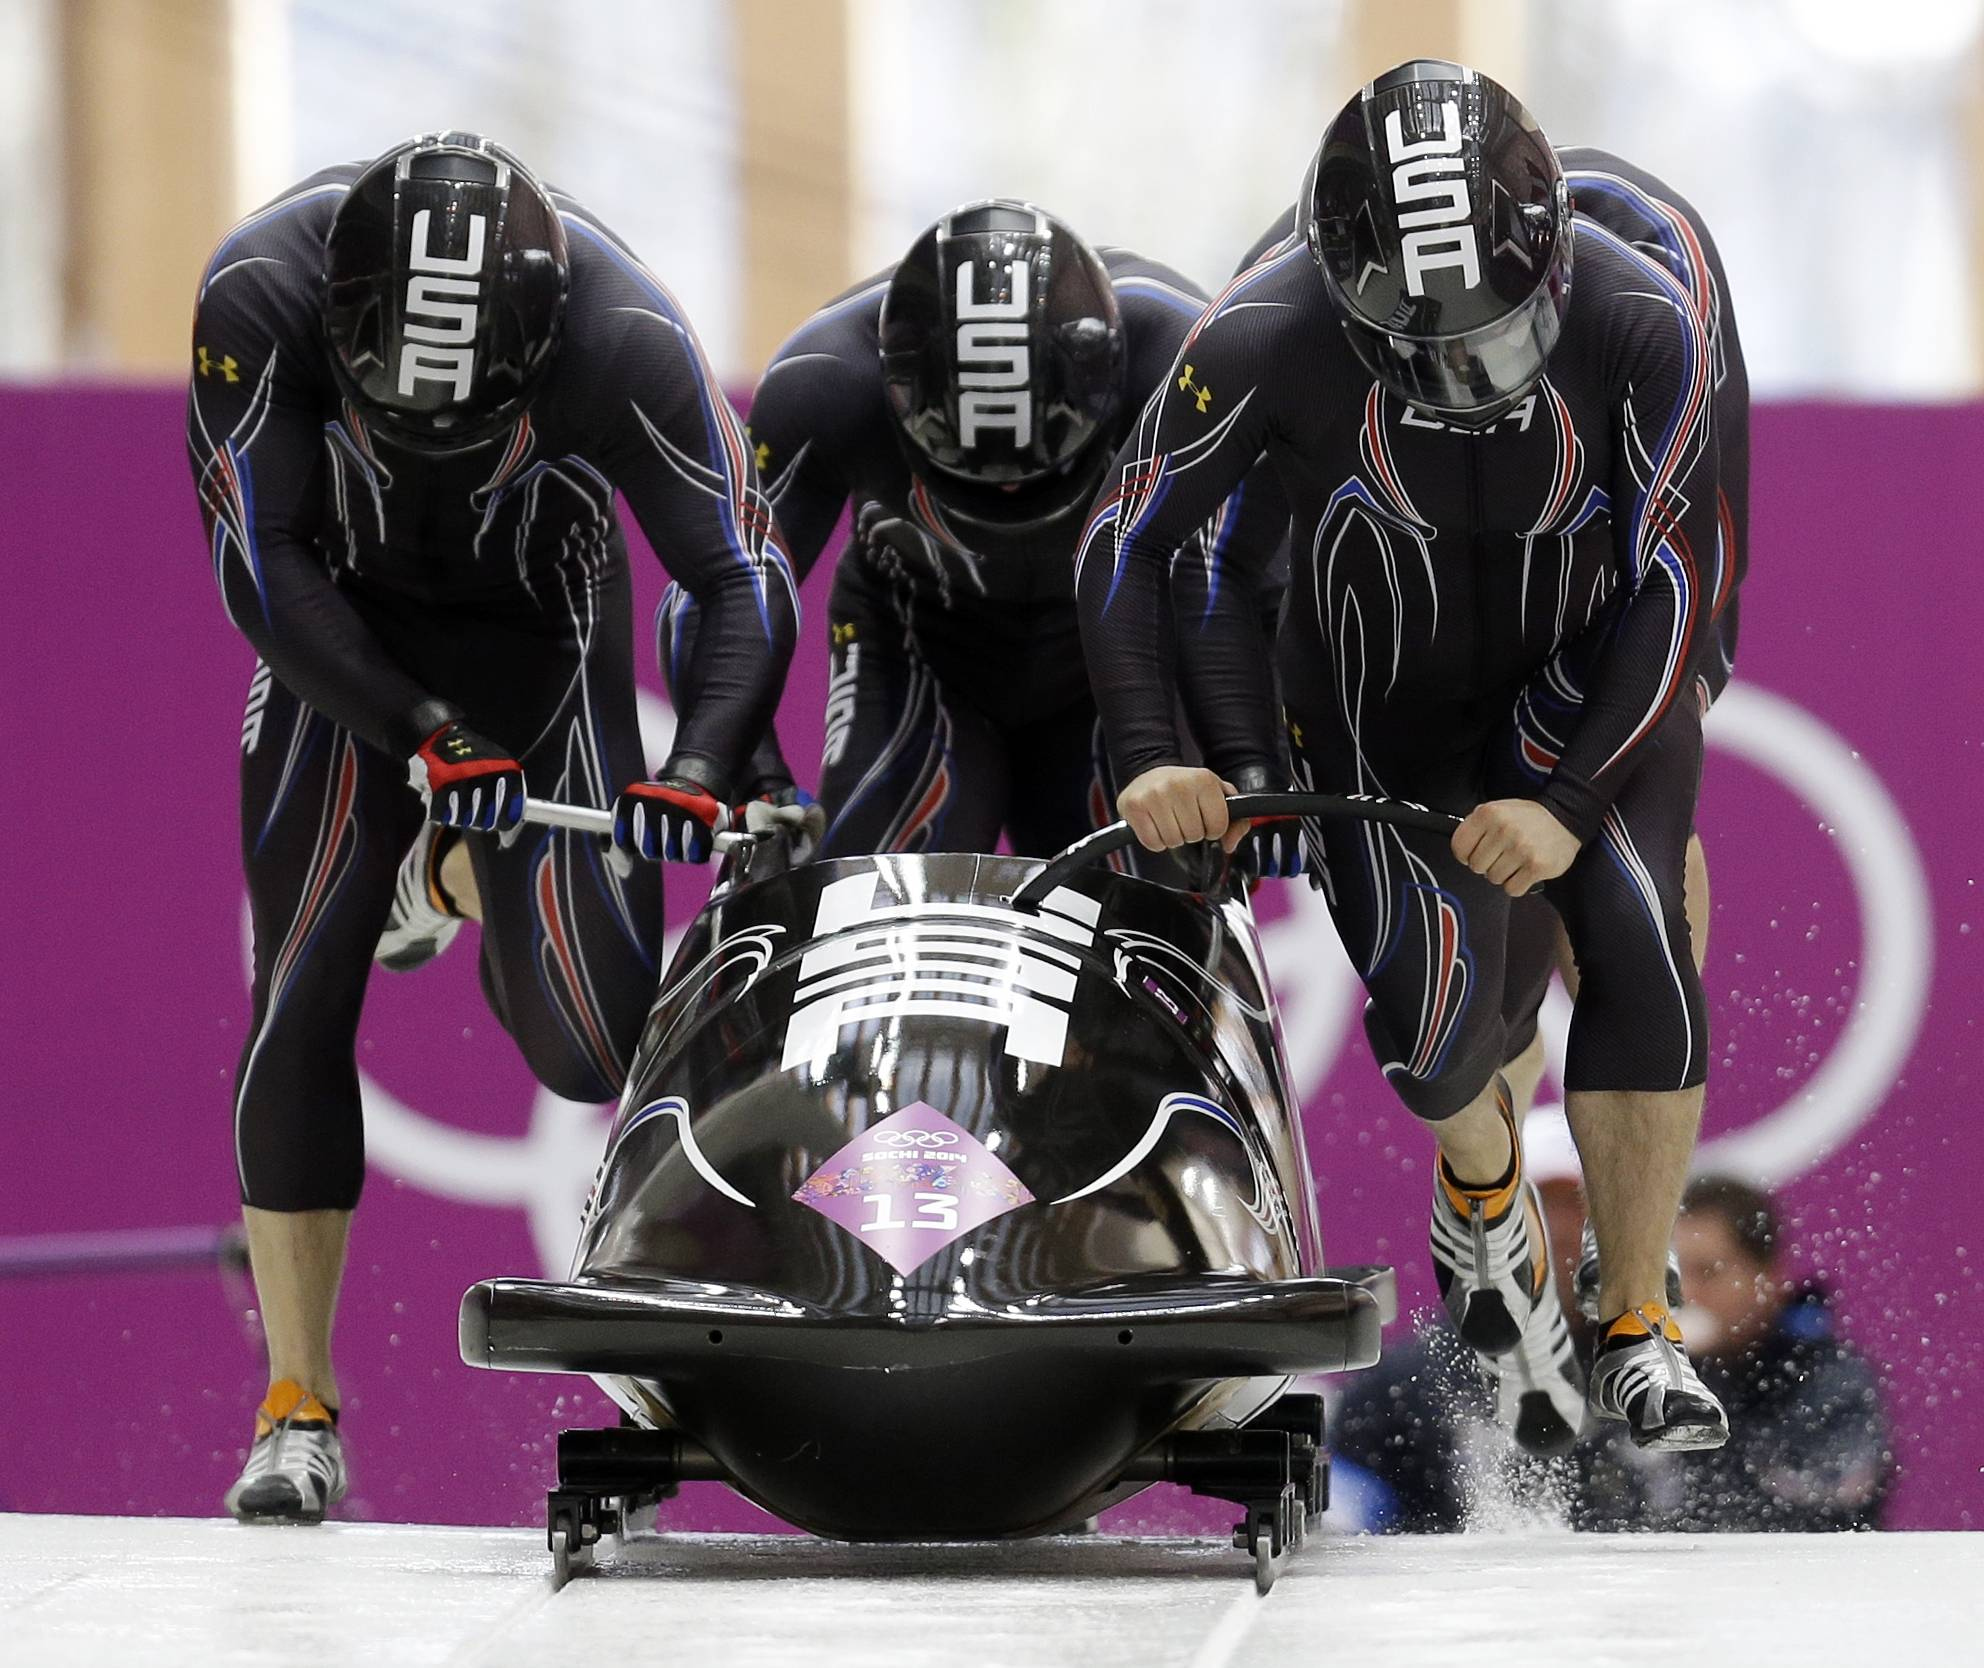 The team from the United States USA-2, with Nick Cunningham, Justin Olsen, Johnny Quinn and Dallas Robinson, start their third run during the men's four-man bobsled competition final at the 2014 Winter Olympics, Sunday, Feb. 23, 2014, in Krasnaya Polyana, Russia.